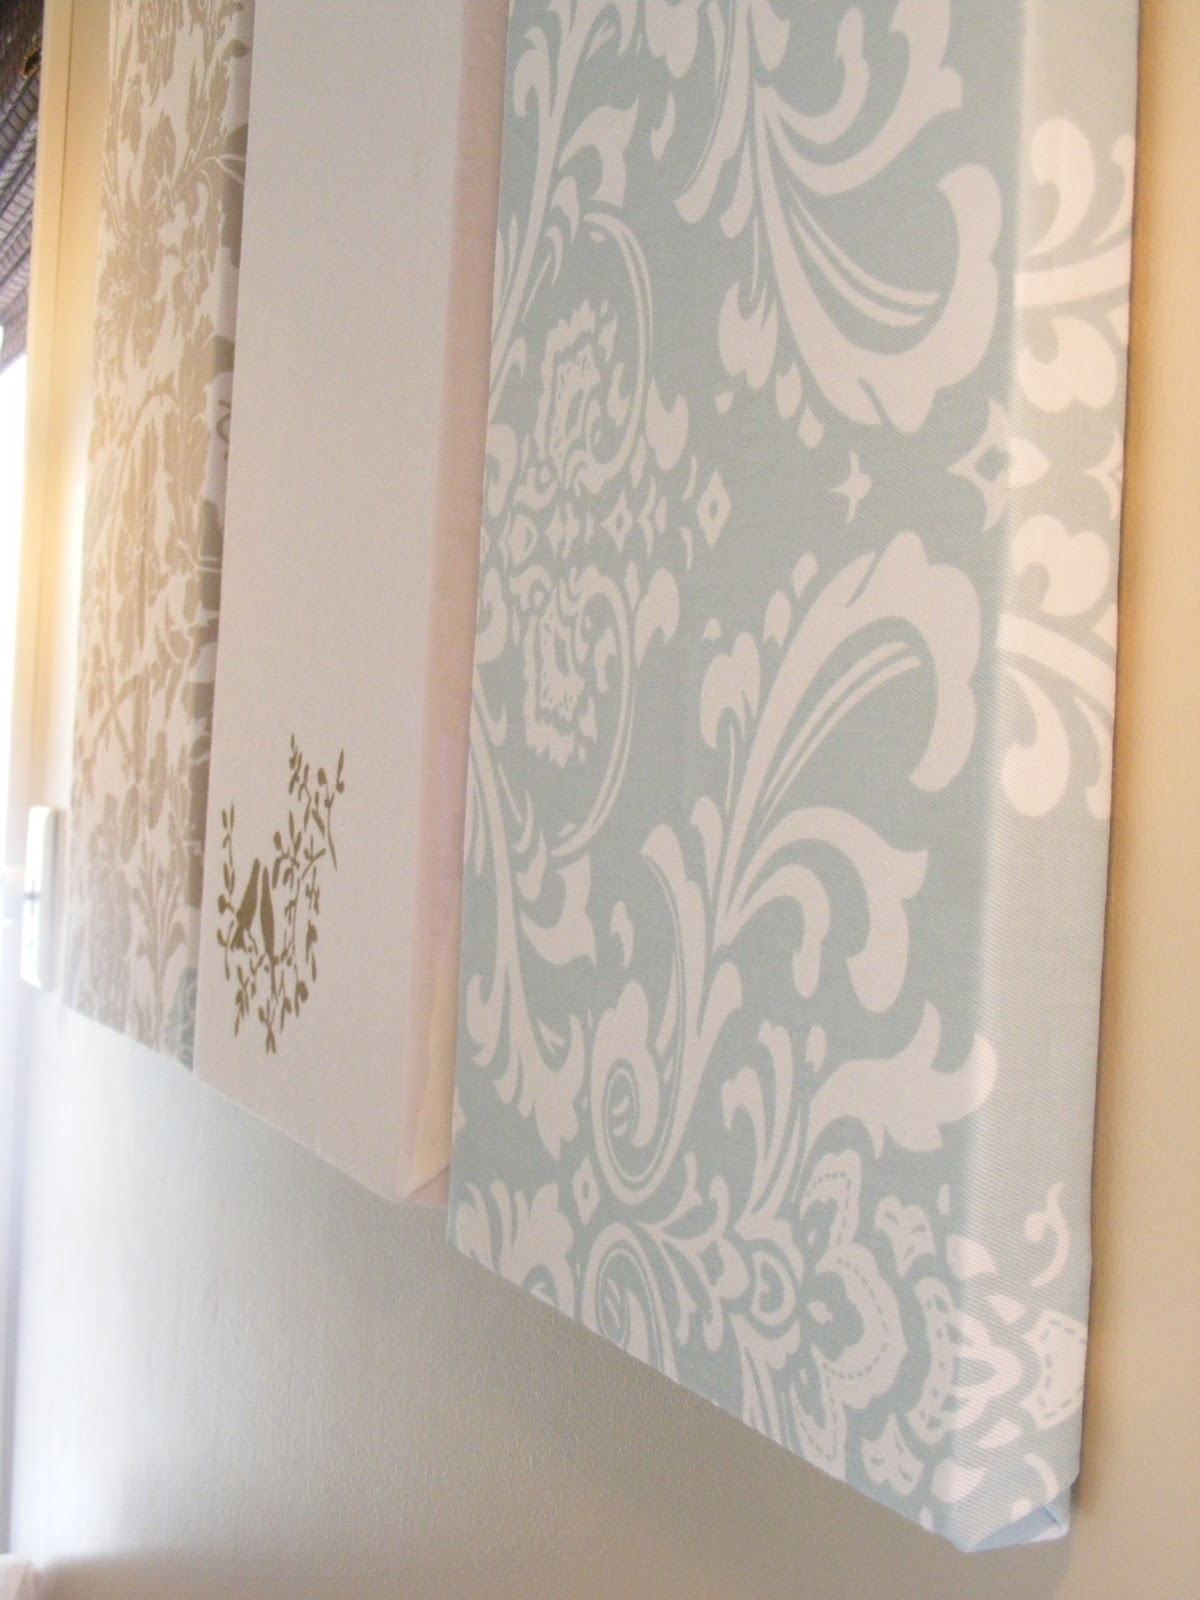 Preferred The Complete Guide To Imperfect Homemaking: Simple, Thrifty Diy Art With Regard To Fabric Wall Art Canvas (View 11 of 15)